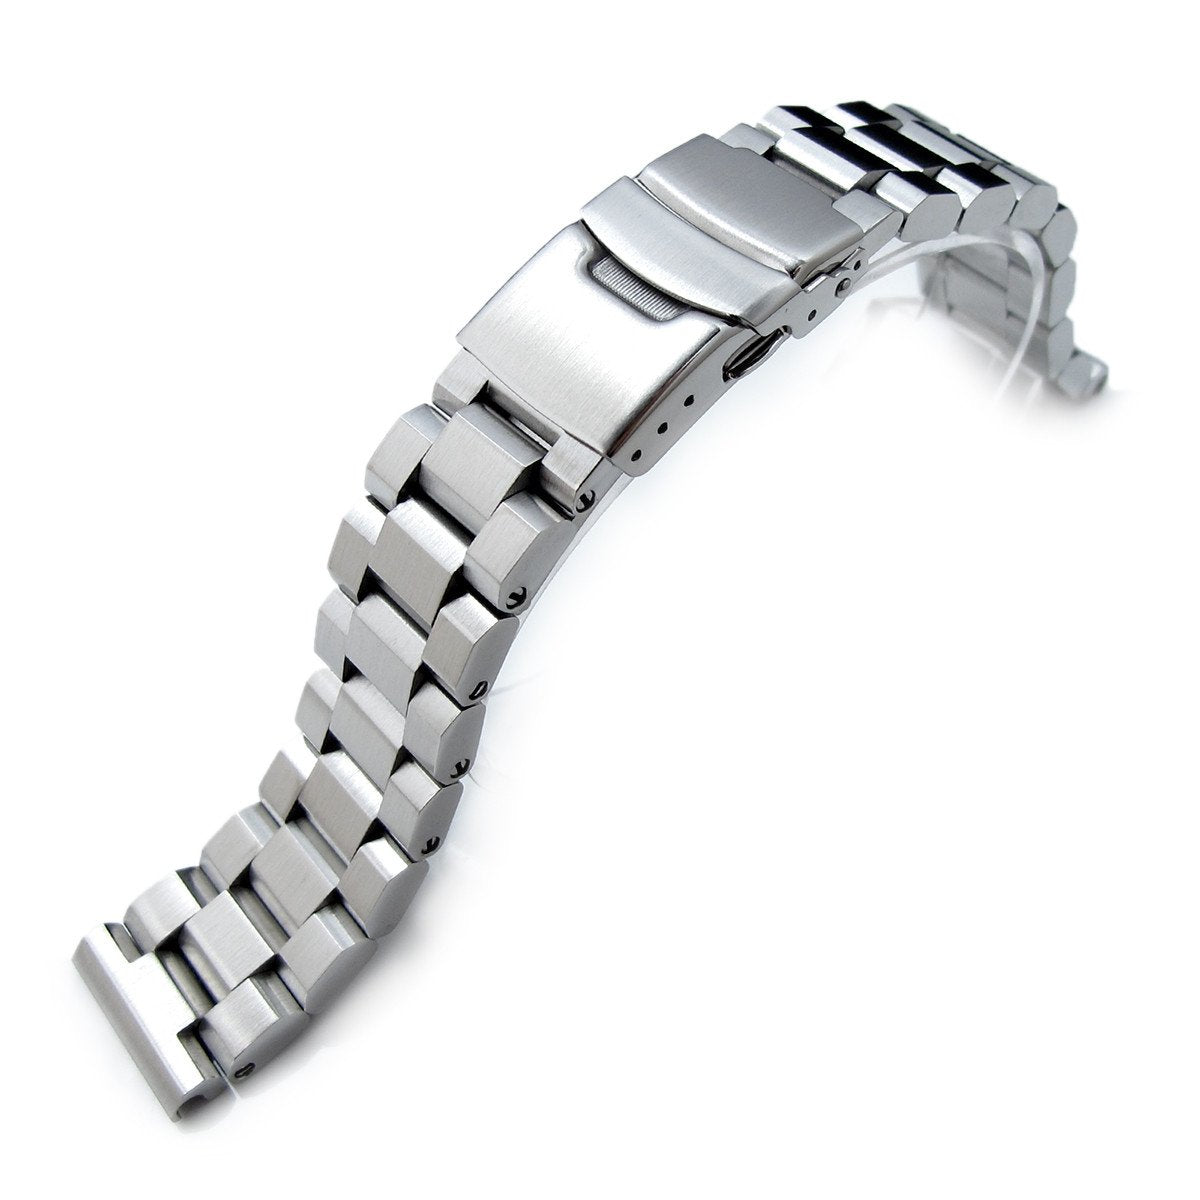 20mm Hexad 316L Stainless Steel Watch Band Straight End Lug Diver Clasp Brushed Strapcode Watch Bands